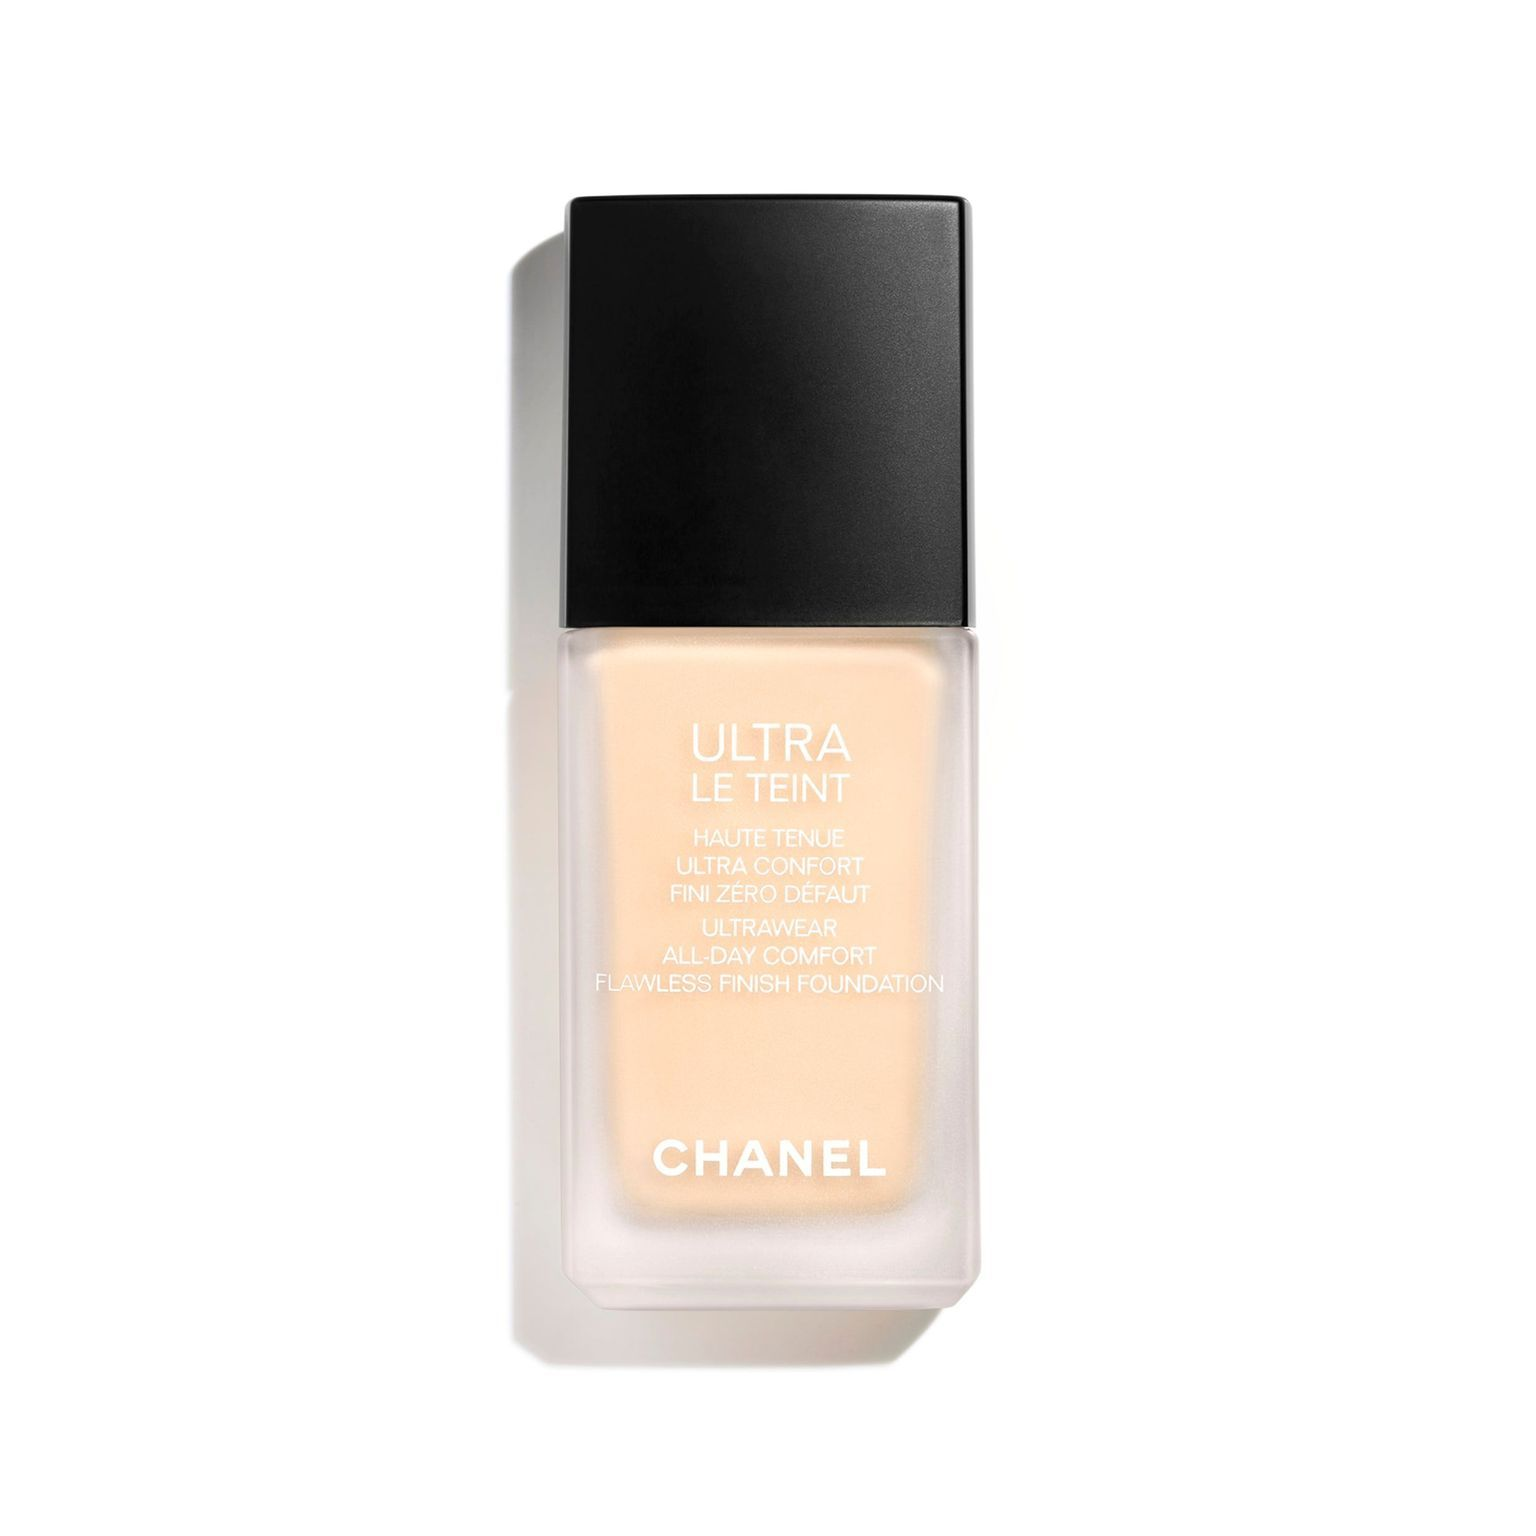 Ultra Le Teint Ultrawear All-day Comfort Flawless Finish Foundation